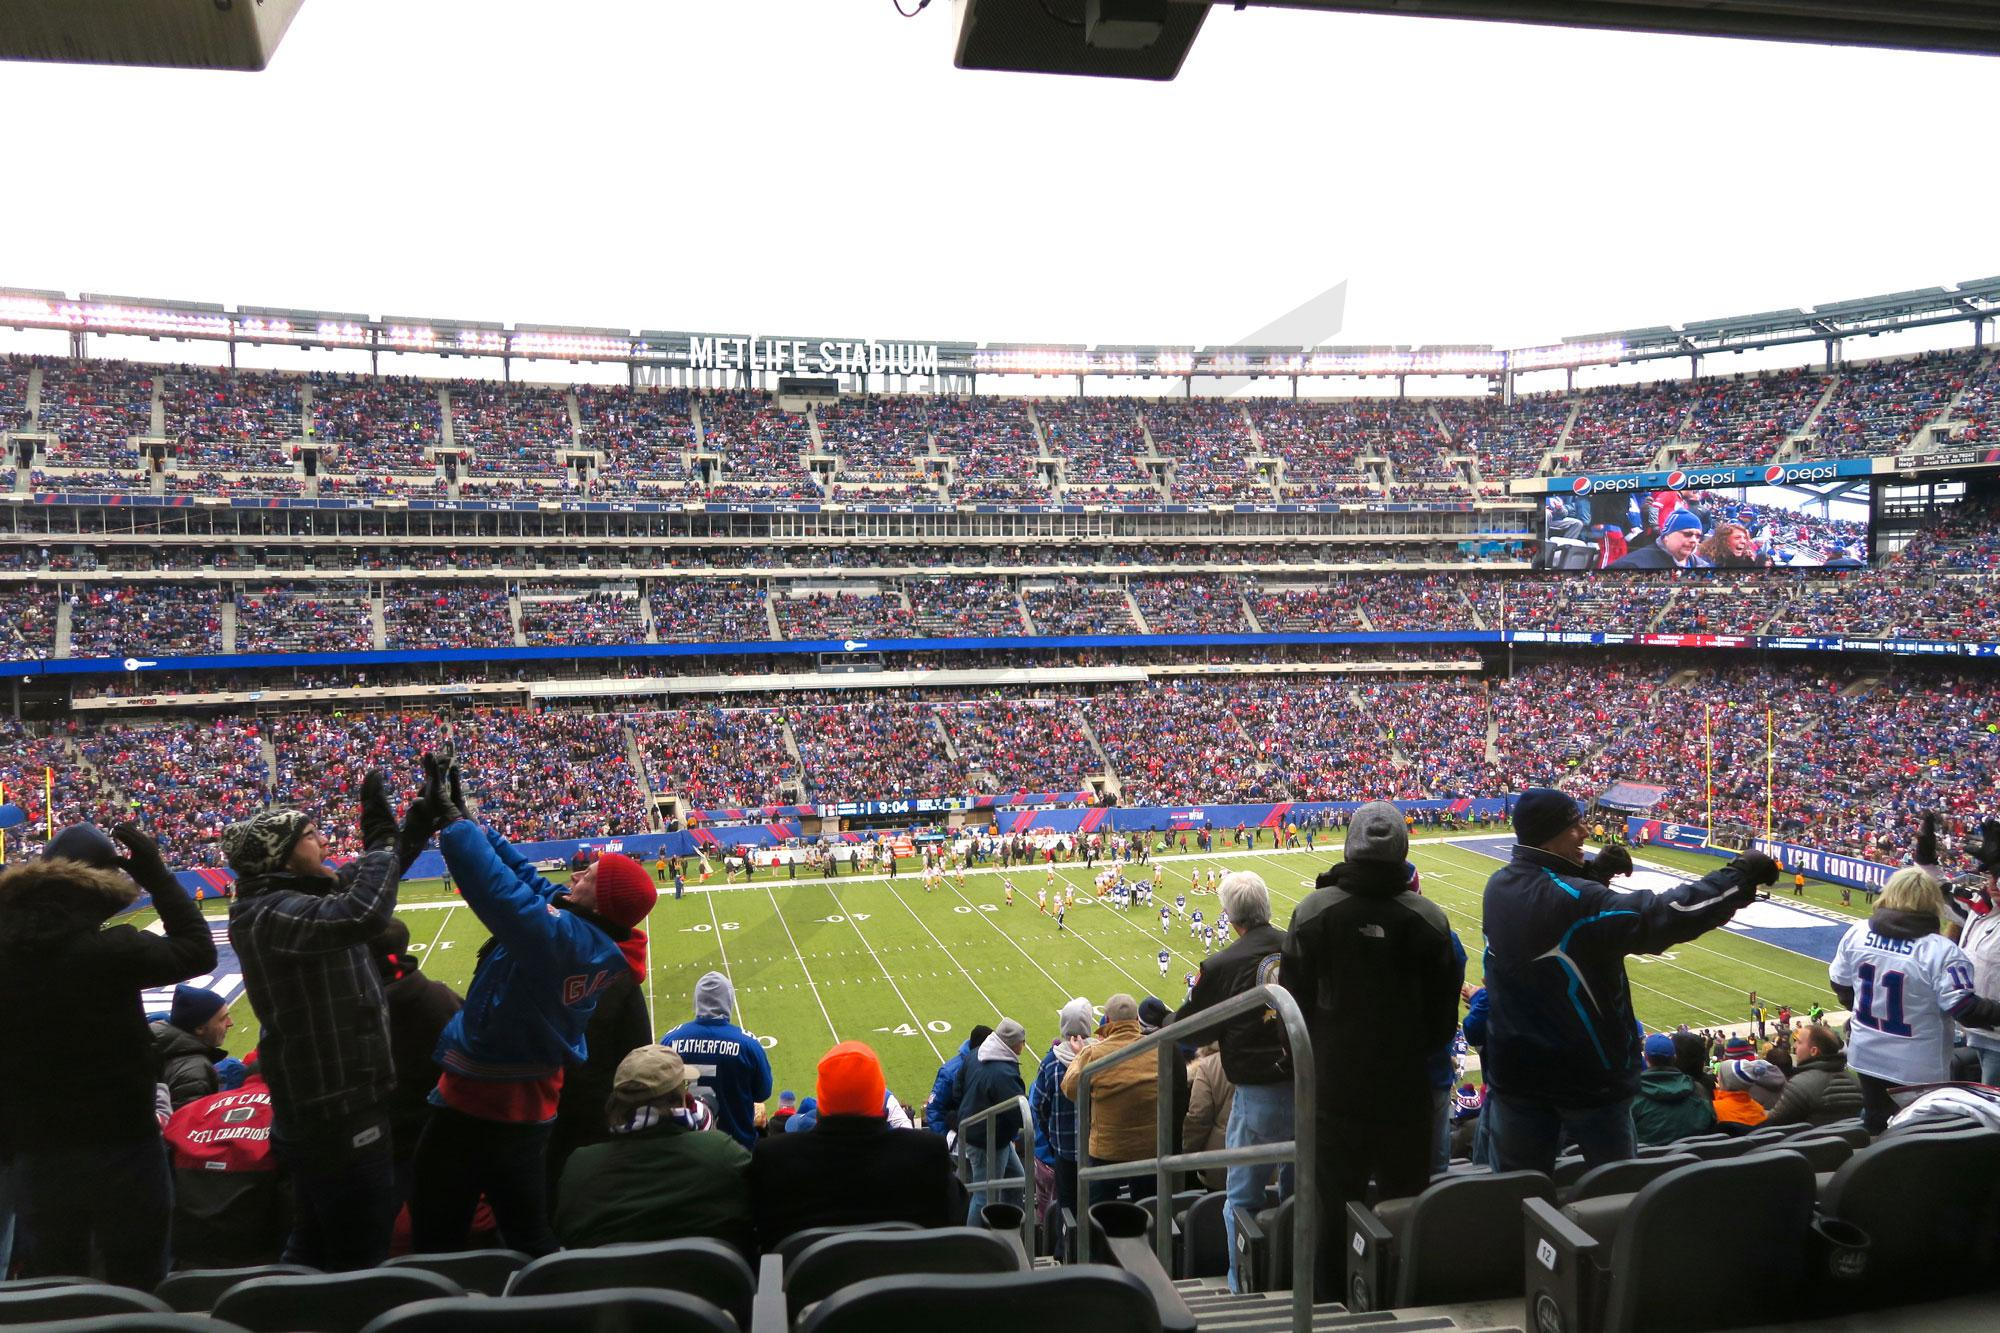 MetLife Stadium Chase Club Level